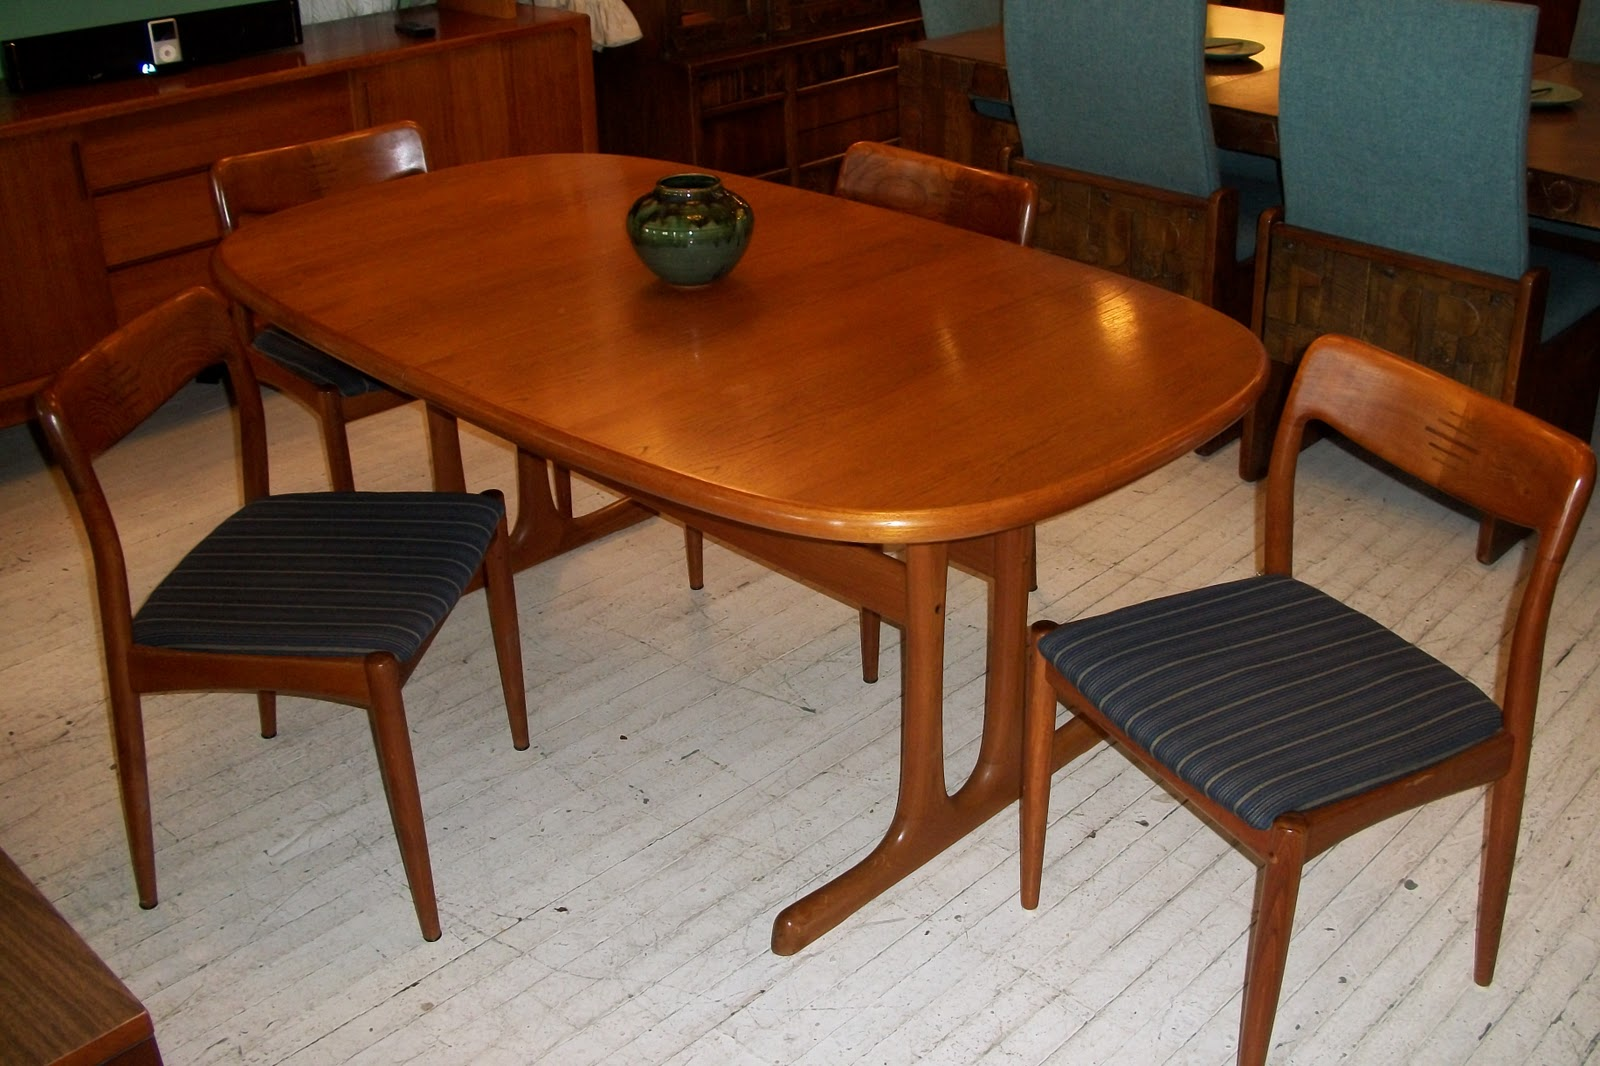 D Scan SOLID Teak Dining Room Table 4 Chairs